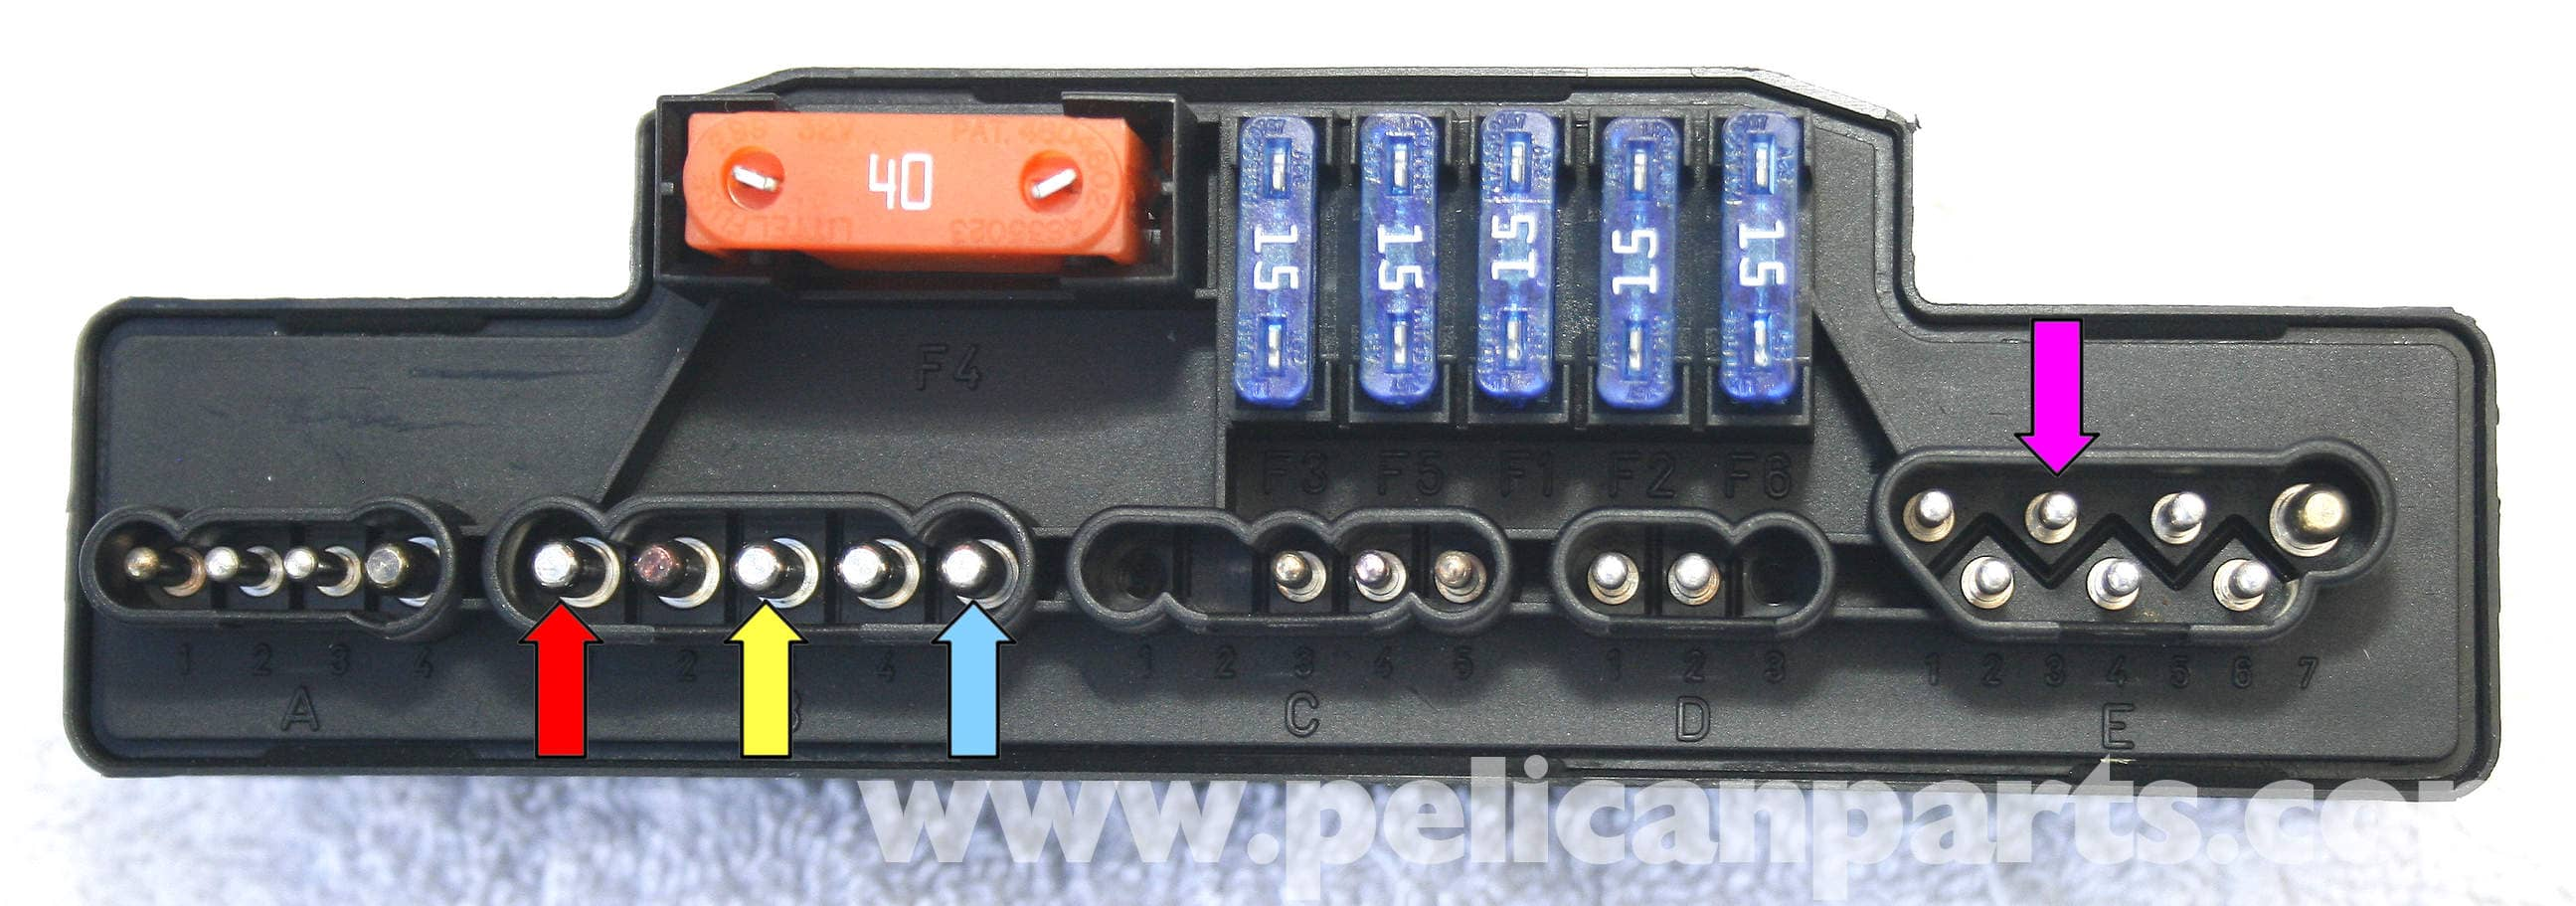 K40 relay e320 wiring diagram basic guide wiring diagram mercedes benz slk 230 k40 overload protection relay repair 1998 rh pelicanparts com 4 pin relay wiring diagram fuel pump relay wiring diagram cheapraybanclubmaster Gallery